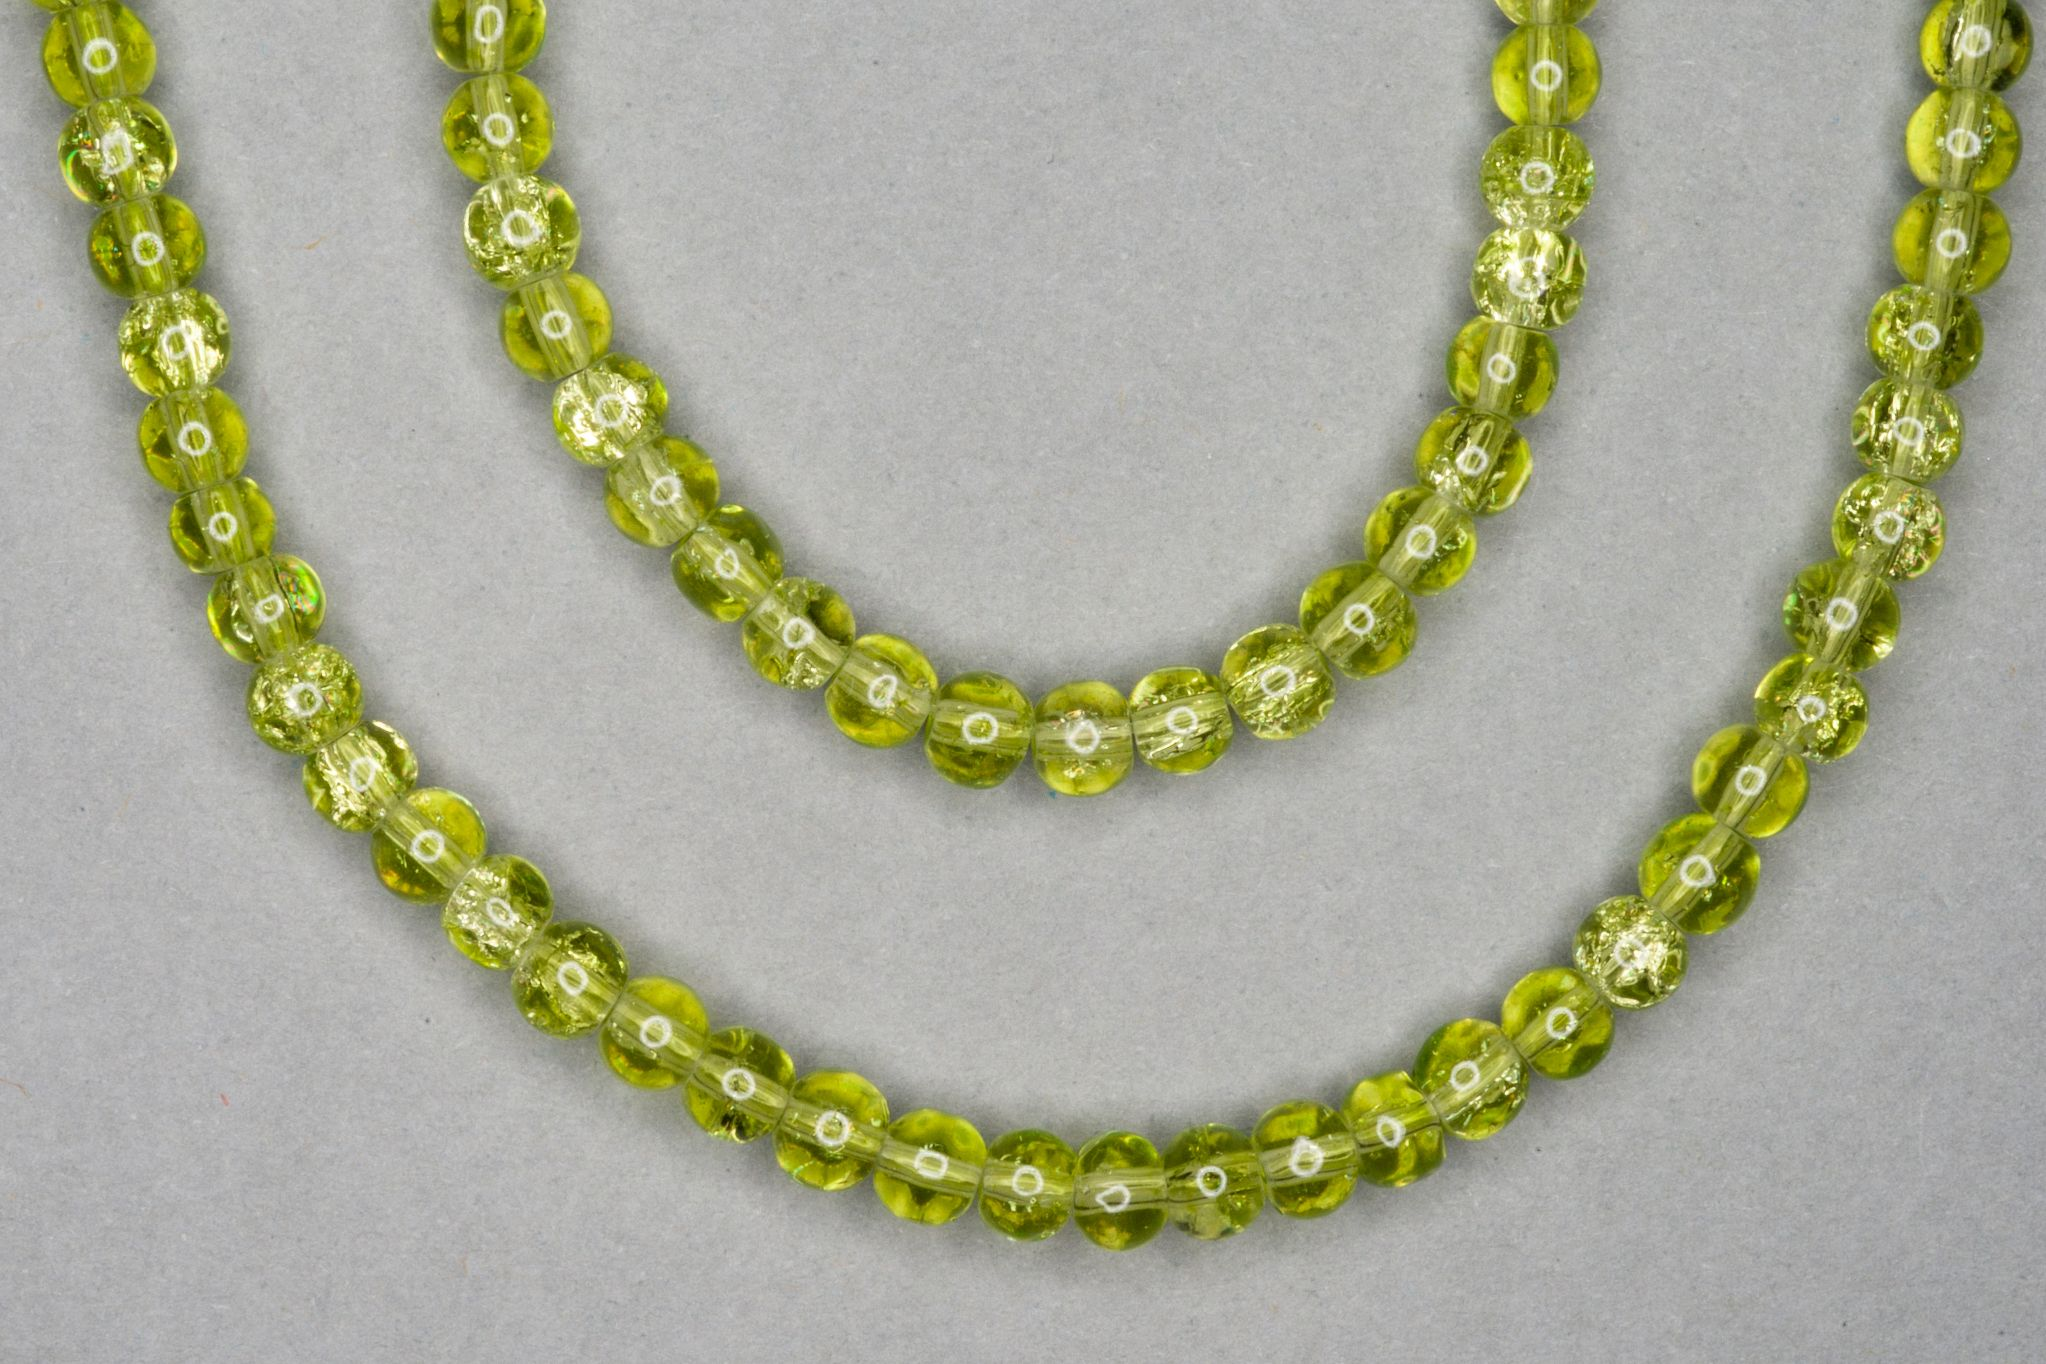 Lime Crackle Glass Beads